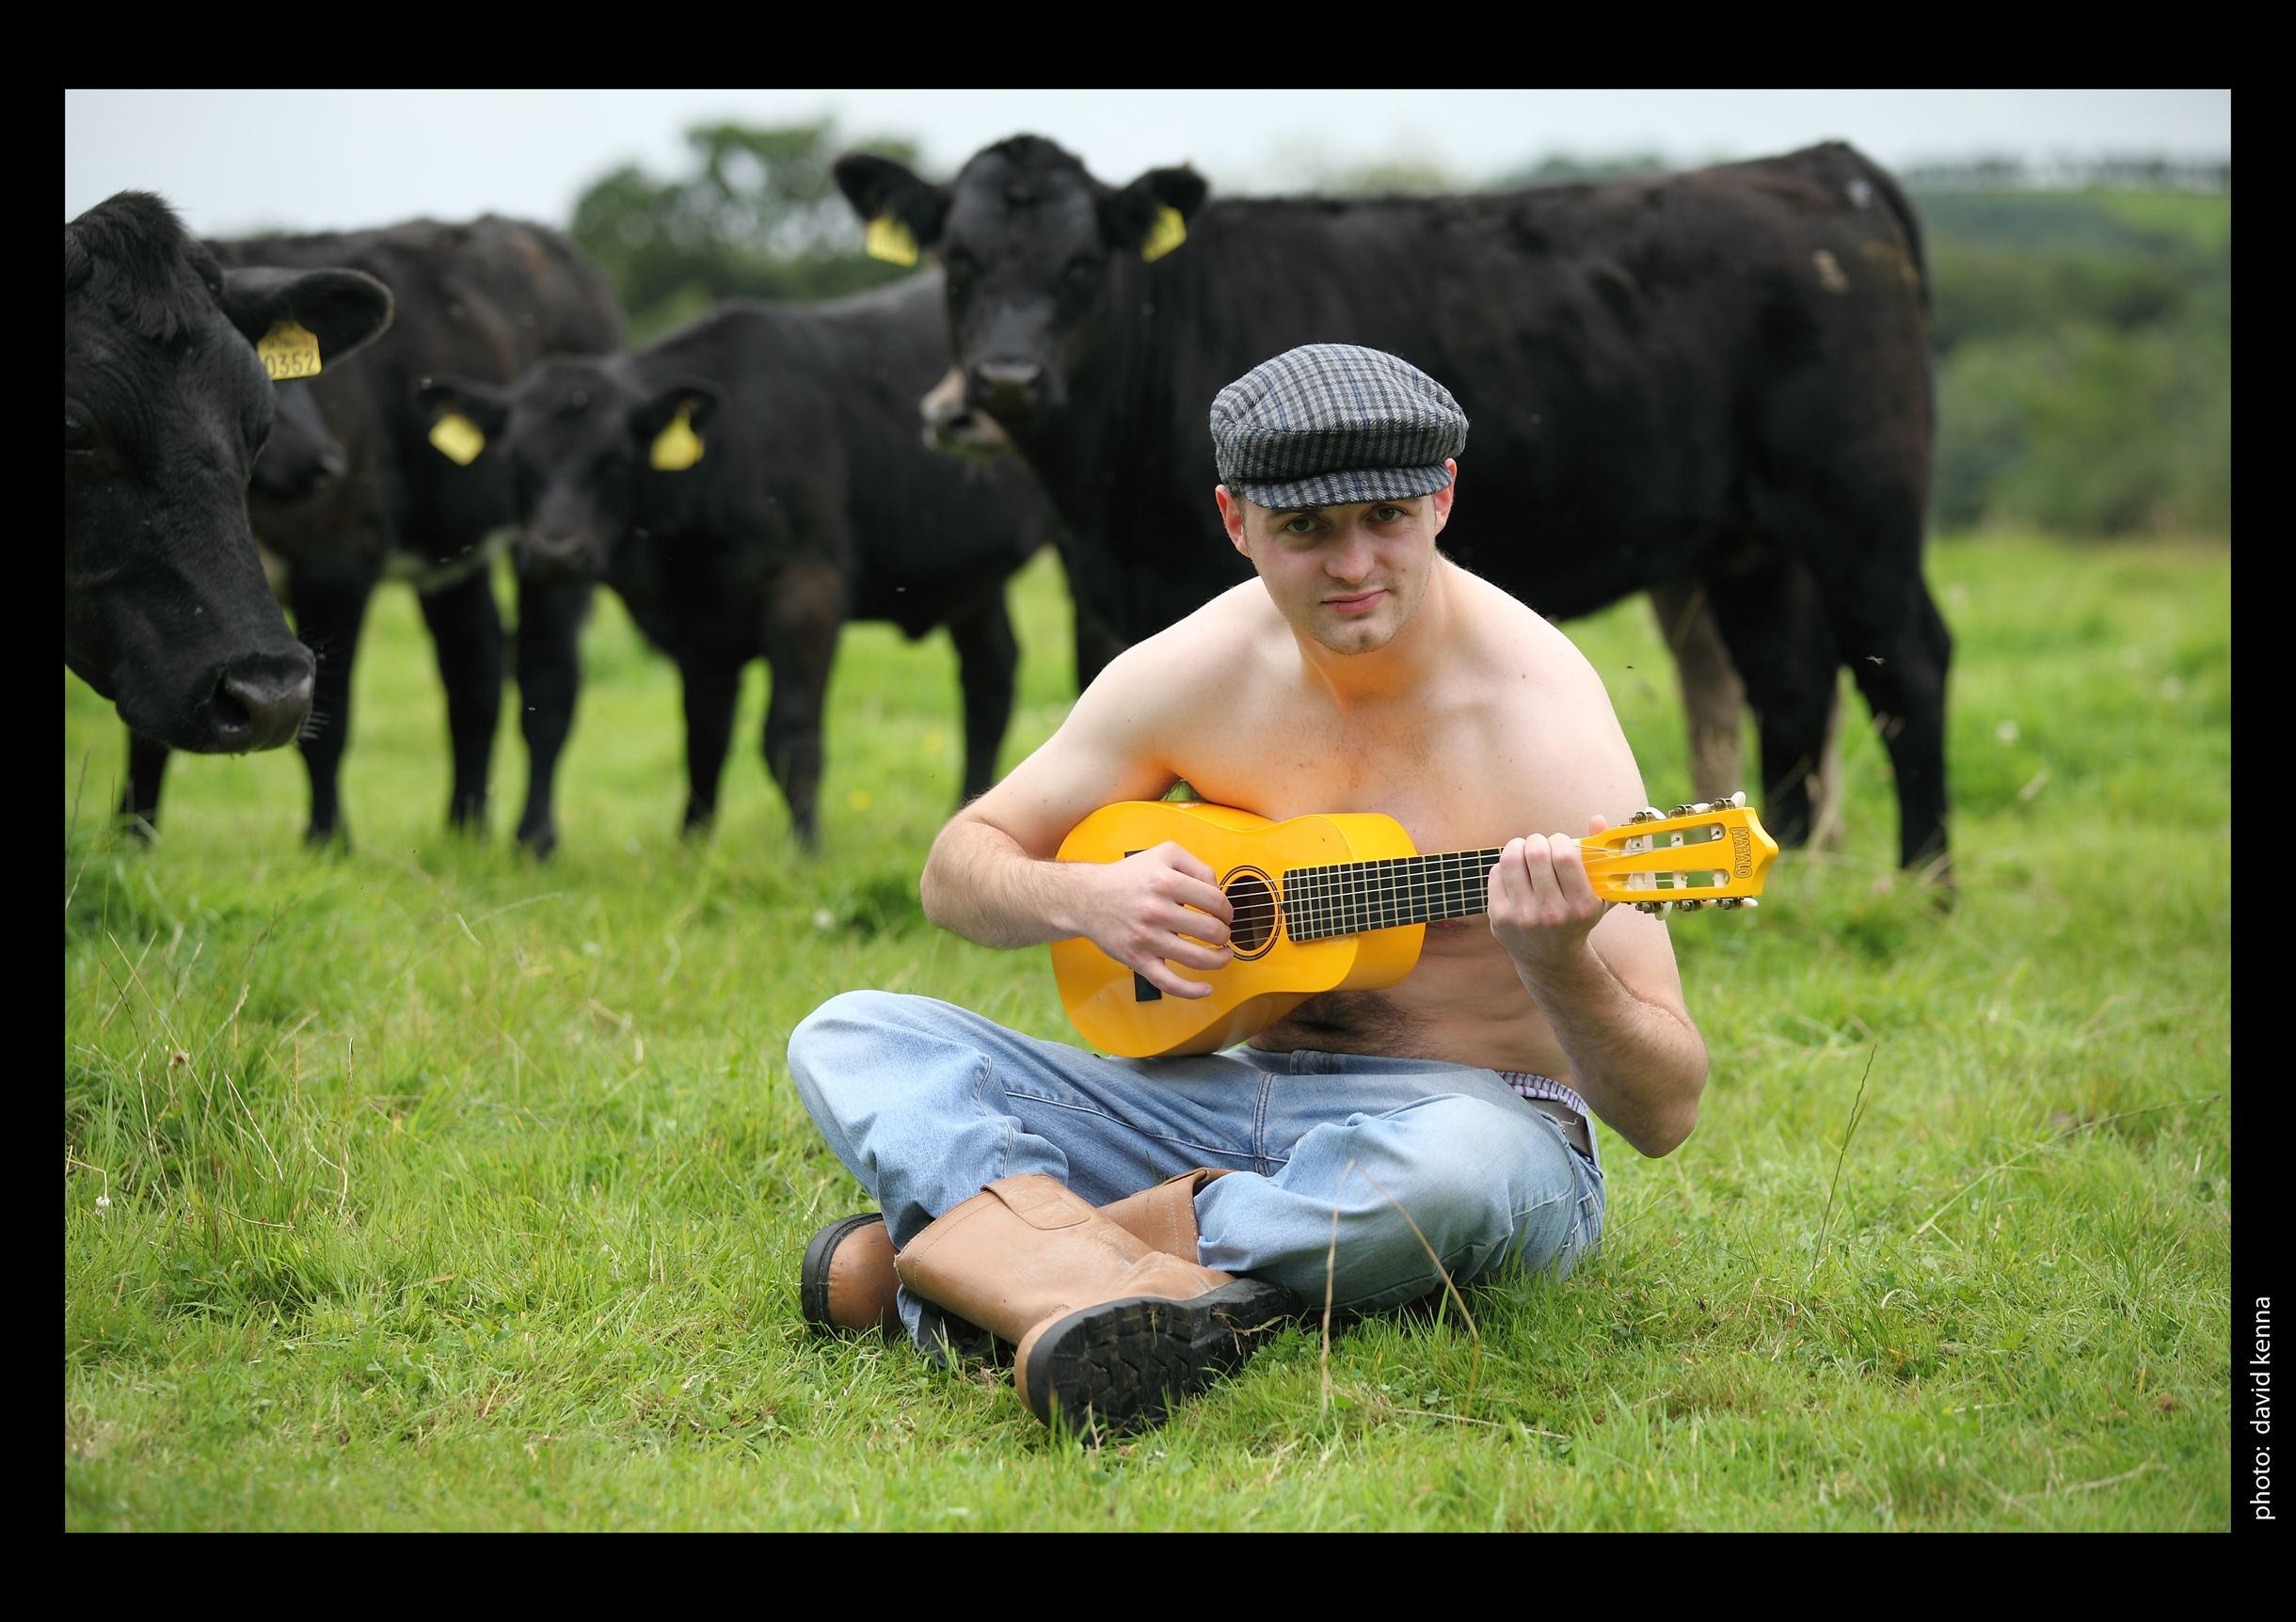 The new Irish Farmers Calendar has been released and its